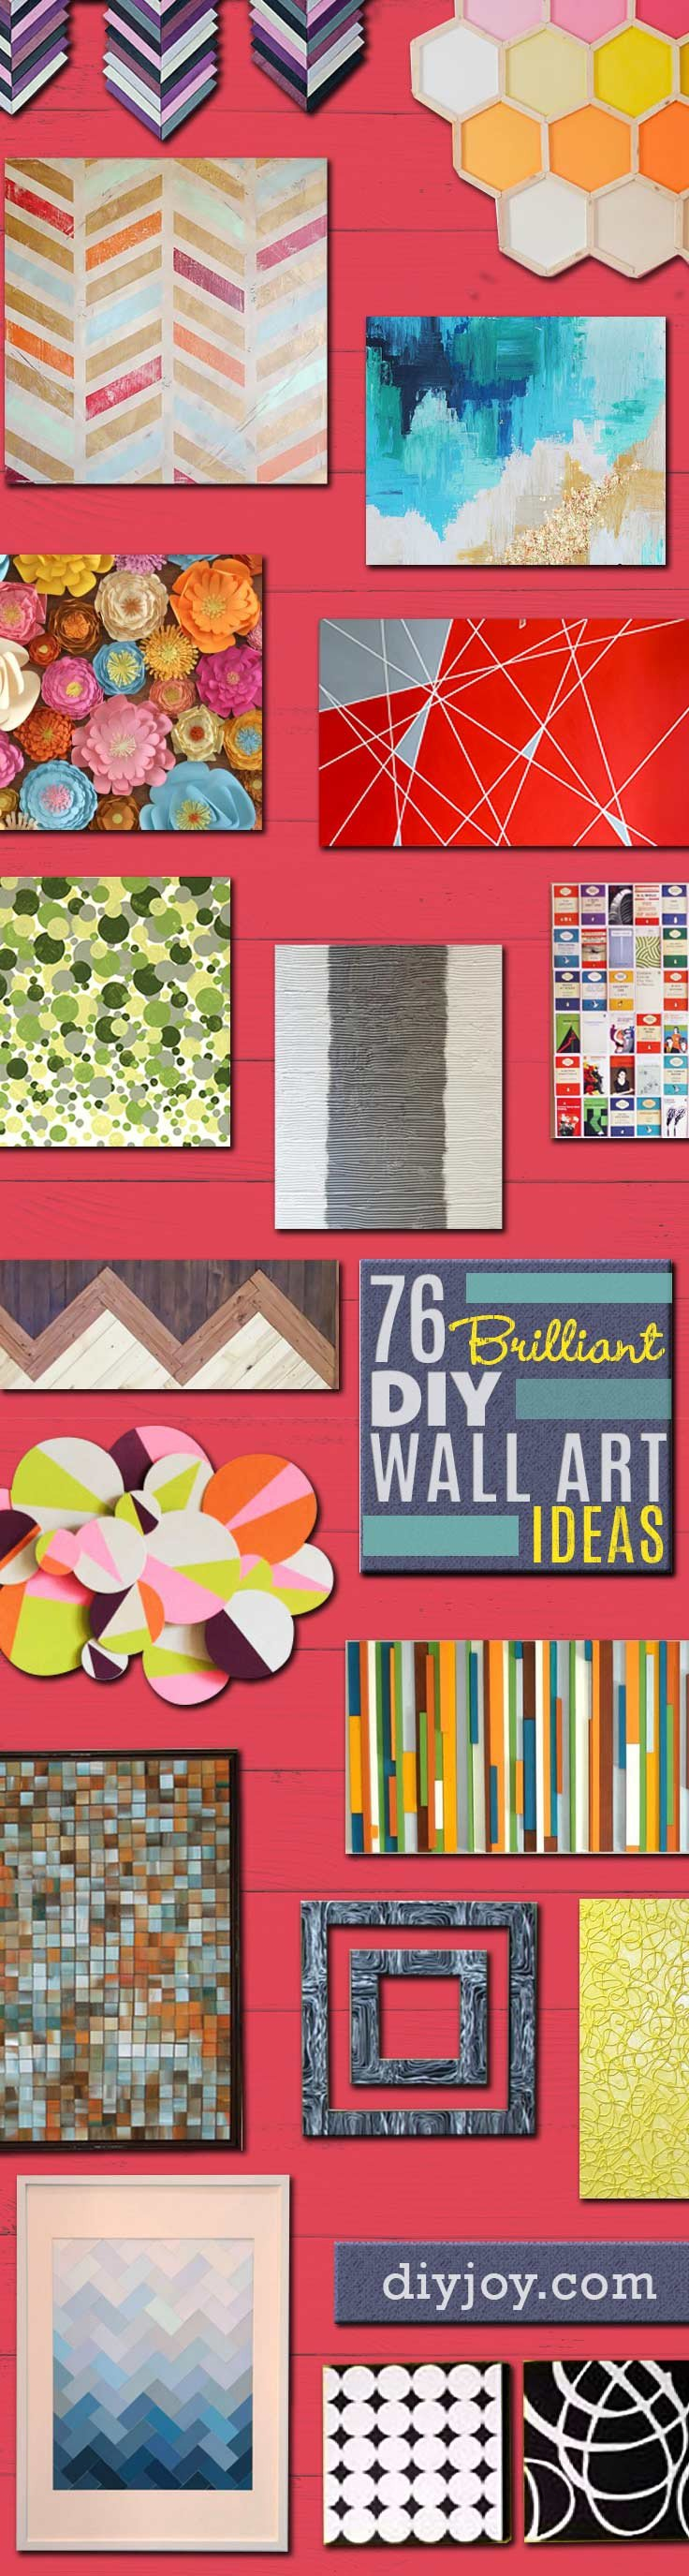 Do It Yourself Wall Decor Unique 76 Brilliant Diy Wall Art Ideas for Your Blank Walls